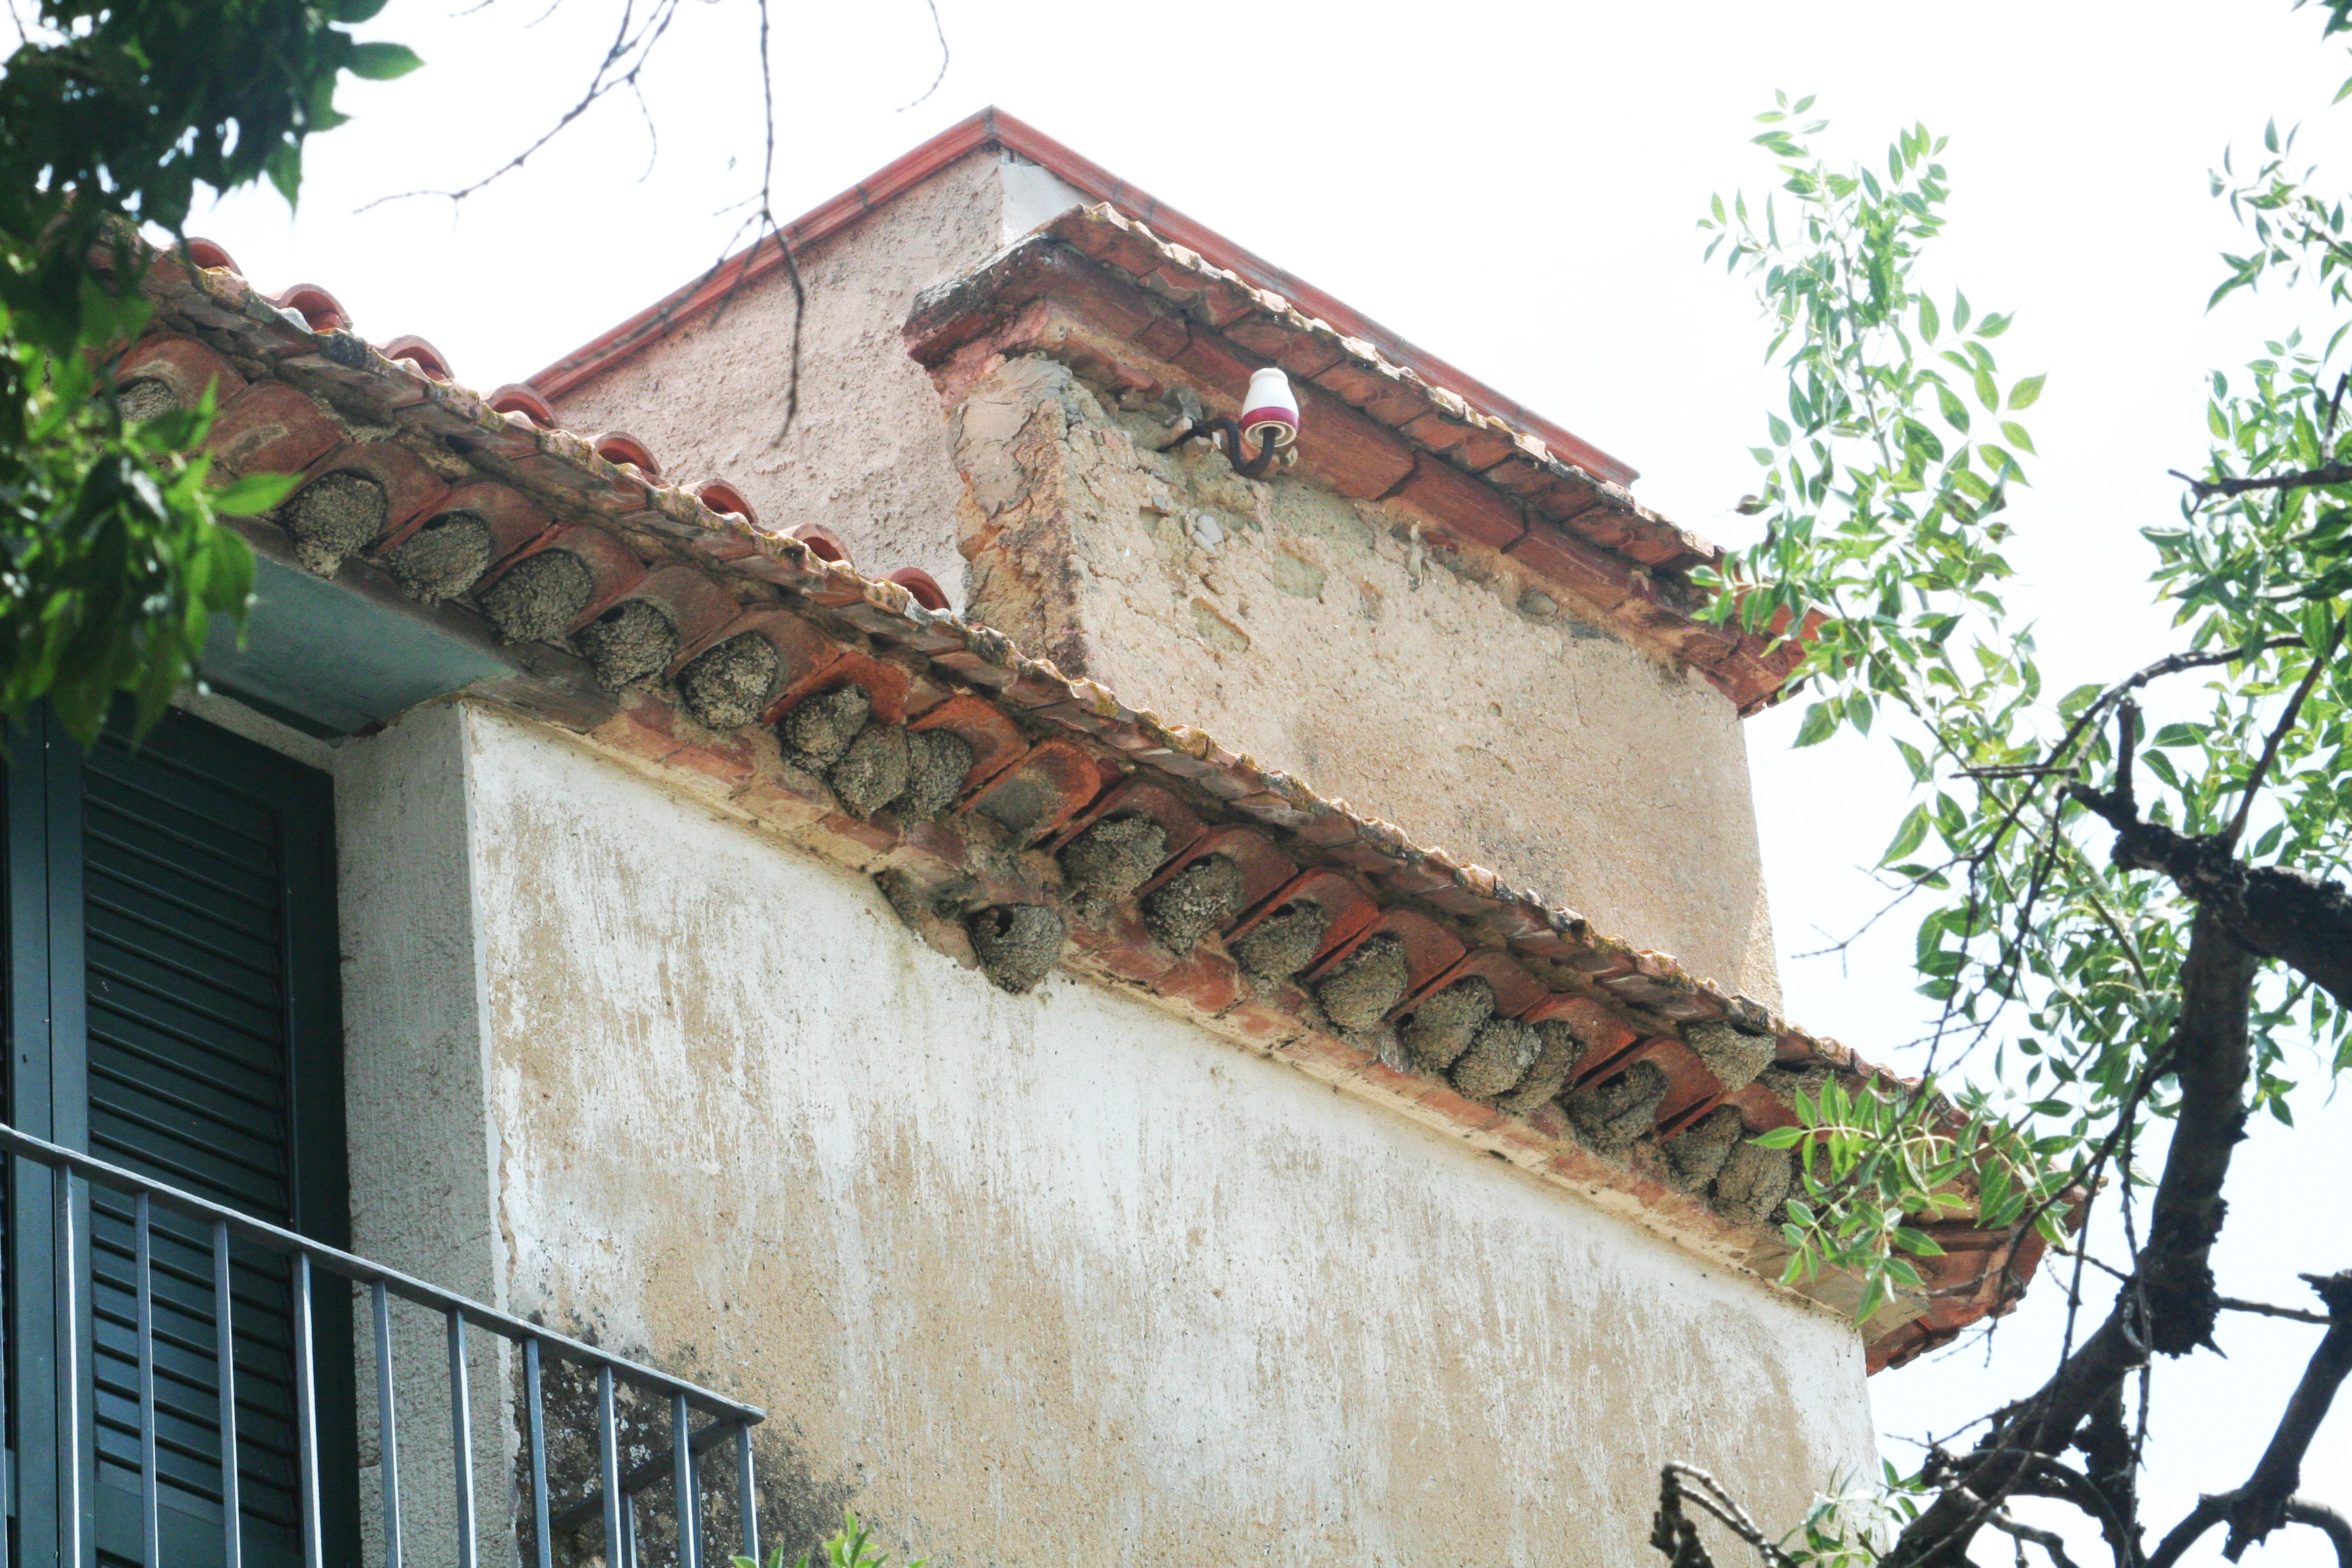 File:Swallow nests at Pisciotta - Italy.JPG - Wikimedia Commons